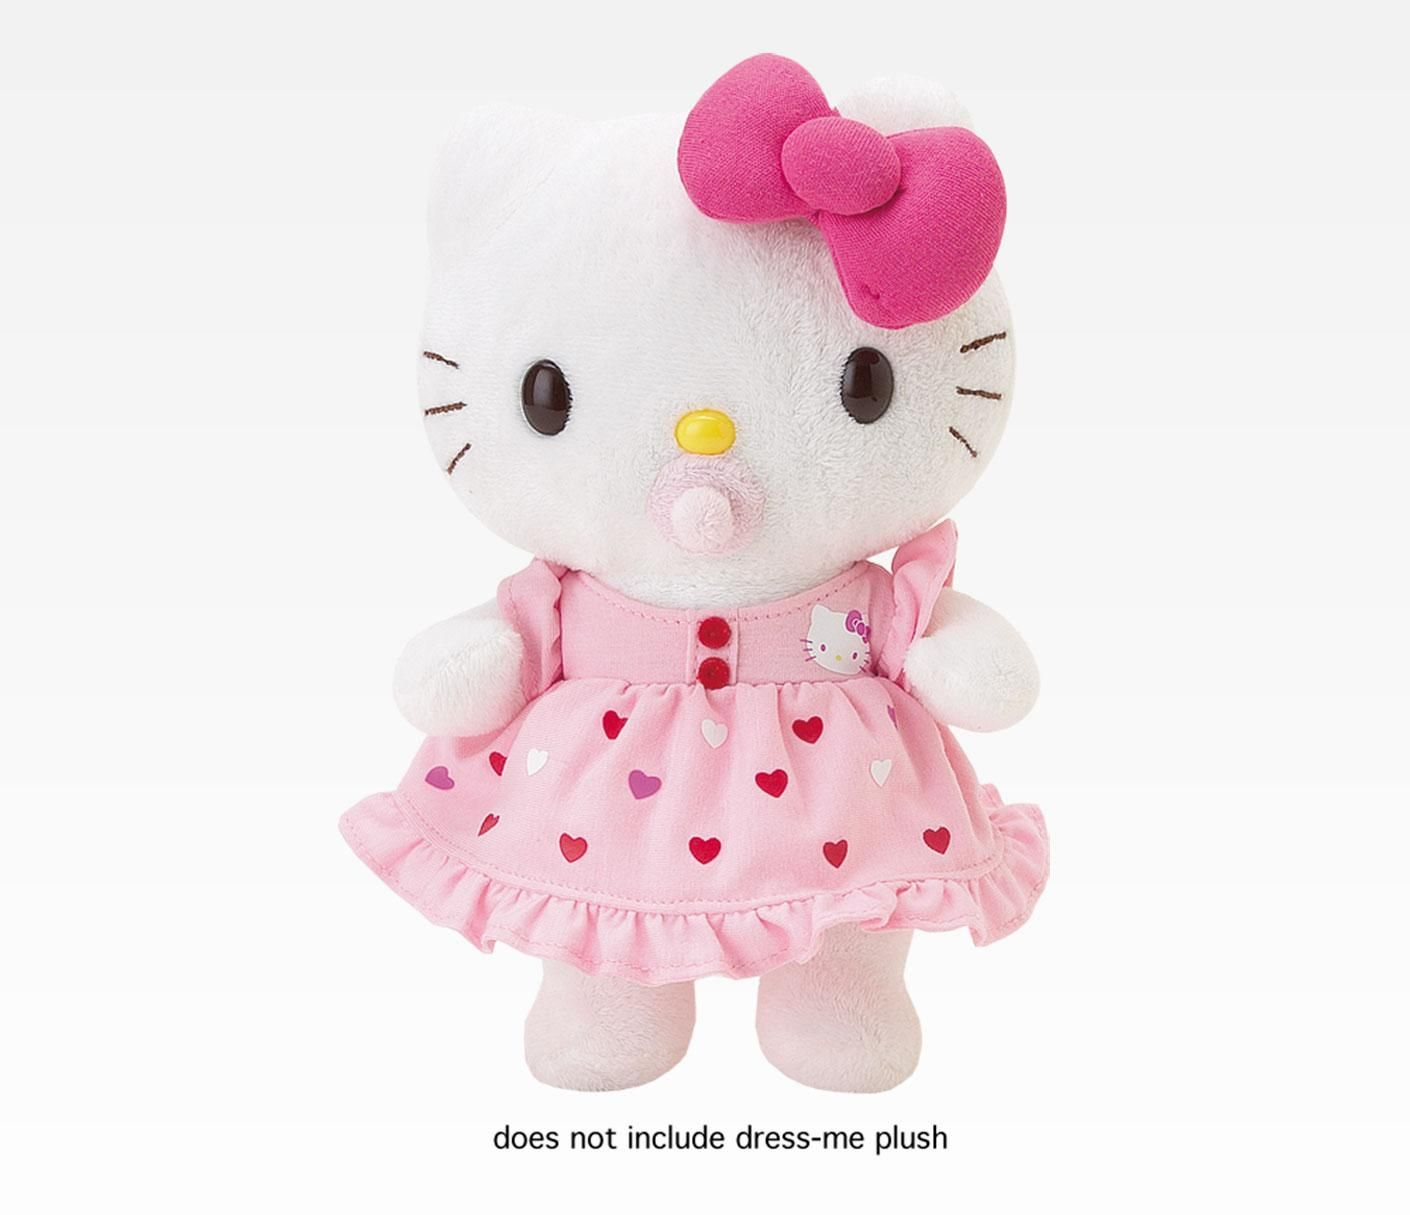 hello kitty ruffled baby romper dress me sanrio plush pinterest hello kitty kitty and plush. Black Bedroom Furniture Sets. Home Design Ideas